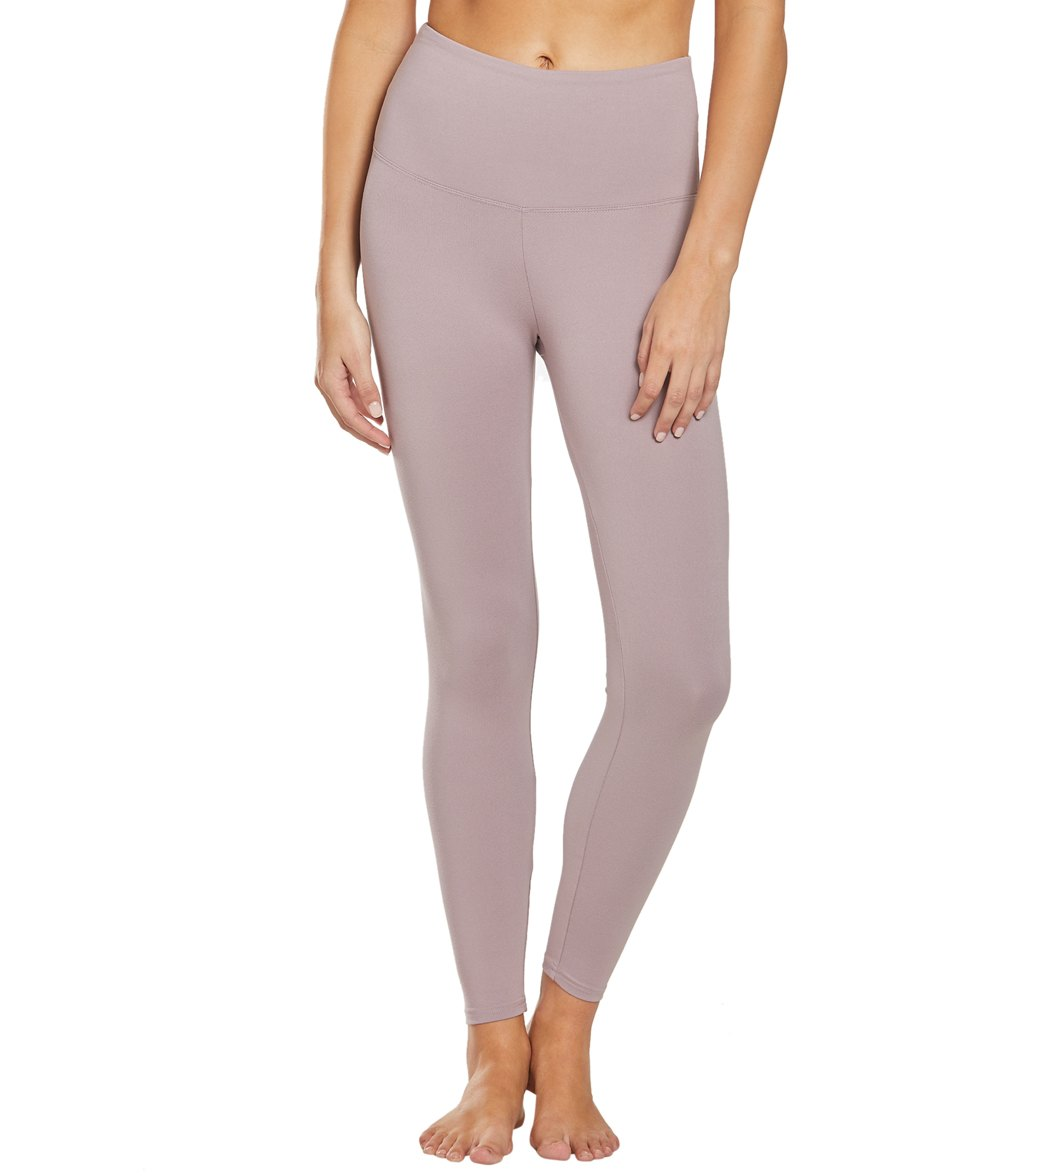 1b39bf08c4fea Balance Collection Ultra High Waisted Yoga Leggings at YogaOutlet.com